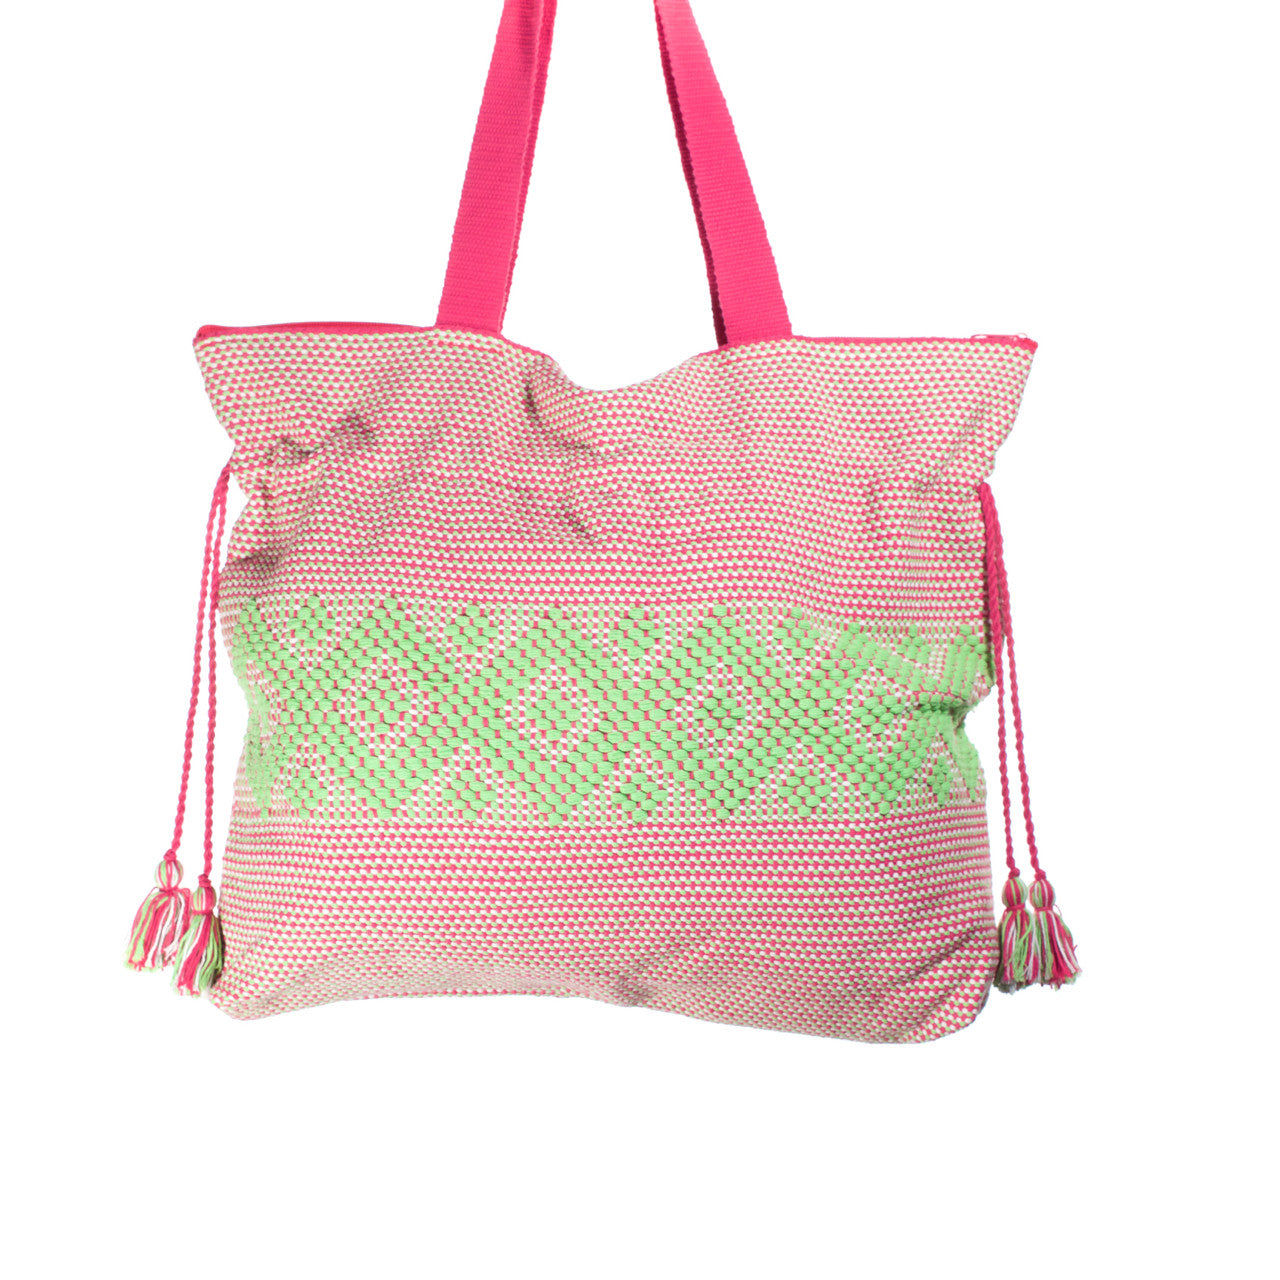 Jalieza Shoulder Bag  Shoulder Bag Lime & Pink - Cielo Collective handmade Mexico Guatemala